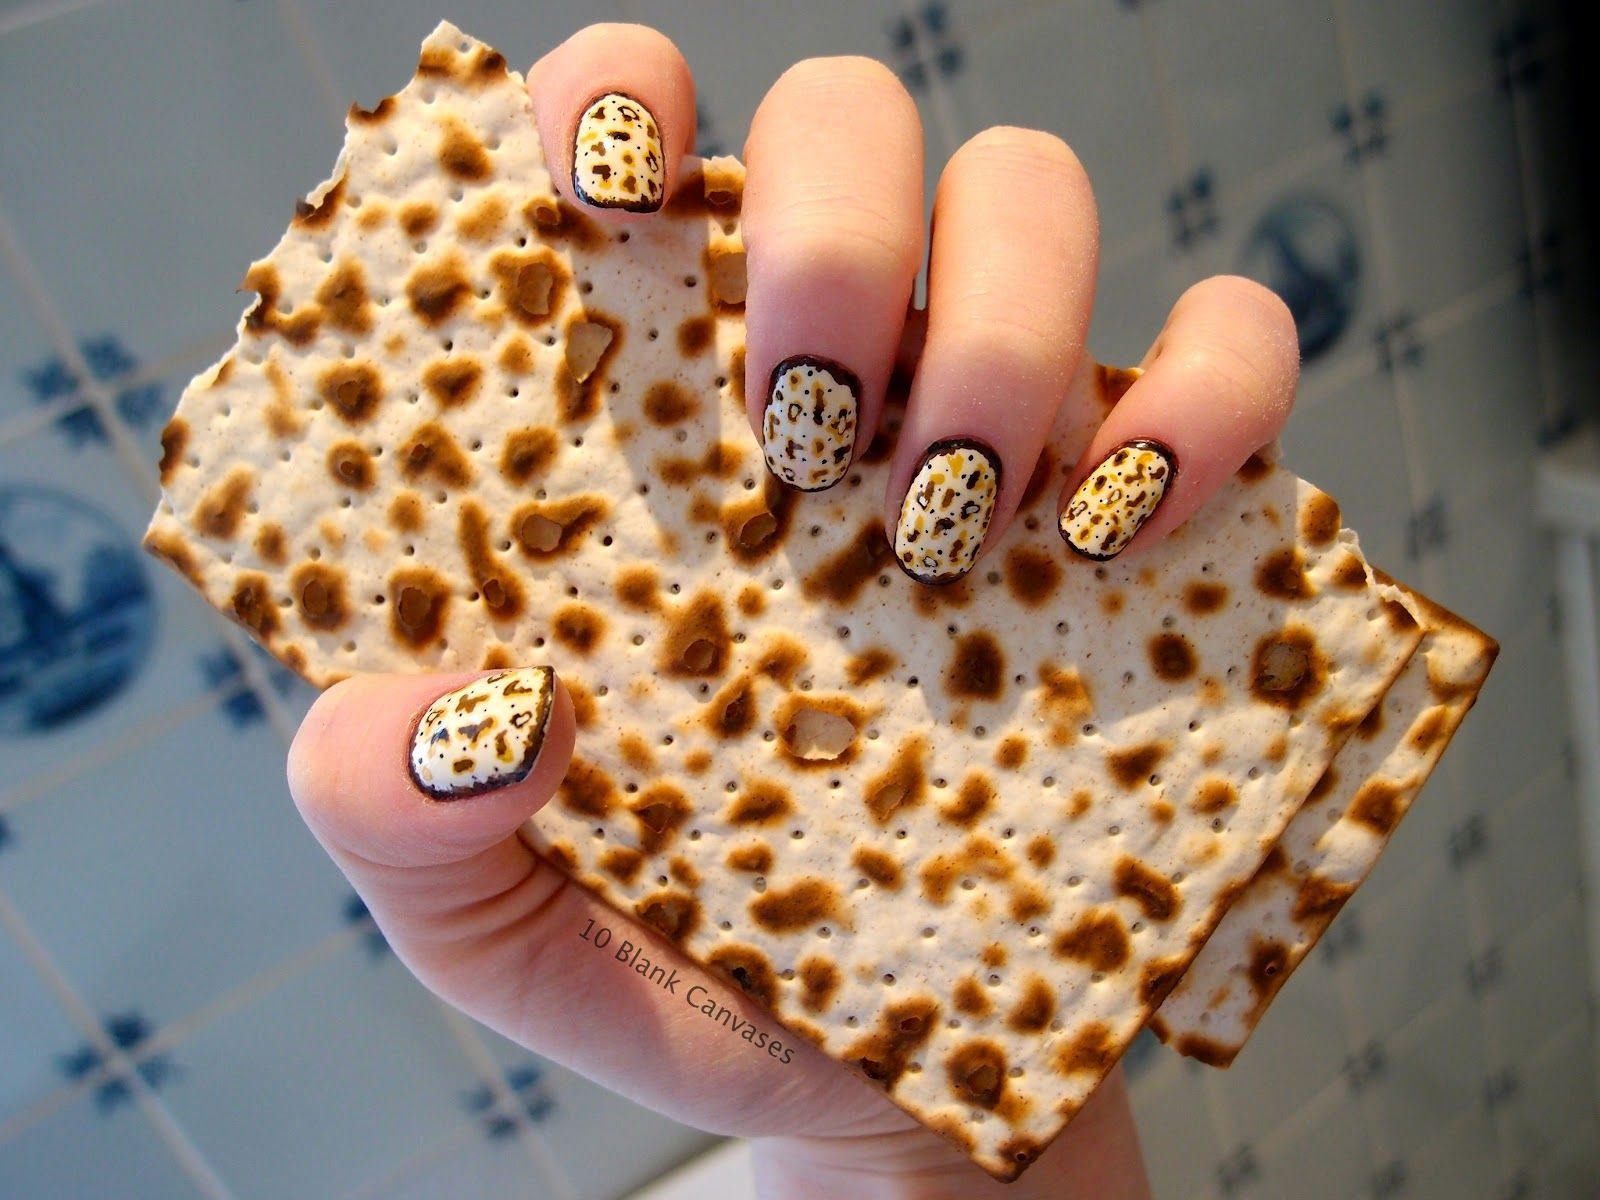 Some Fun Matzoh Recipes - Think Out of The Box! | OnlySimchas ...